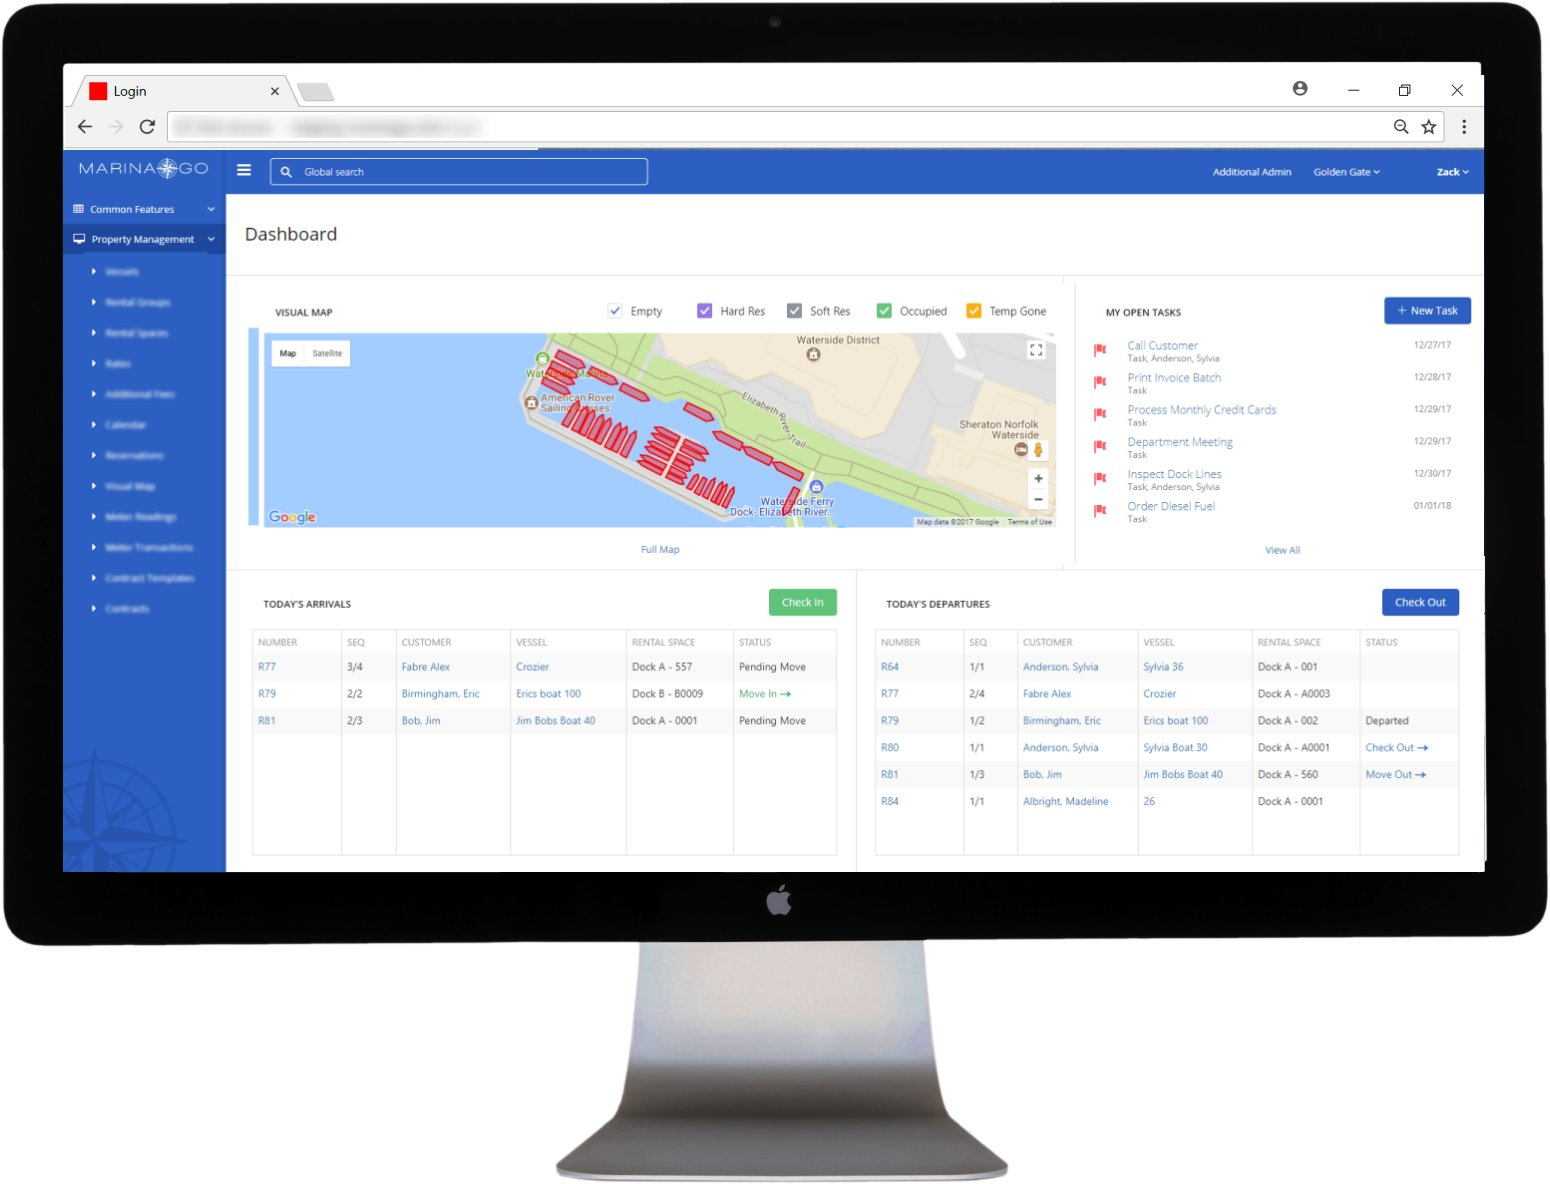 Centralized property management dashboard